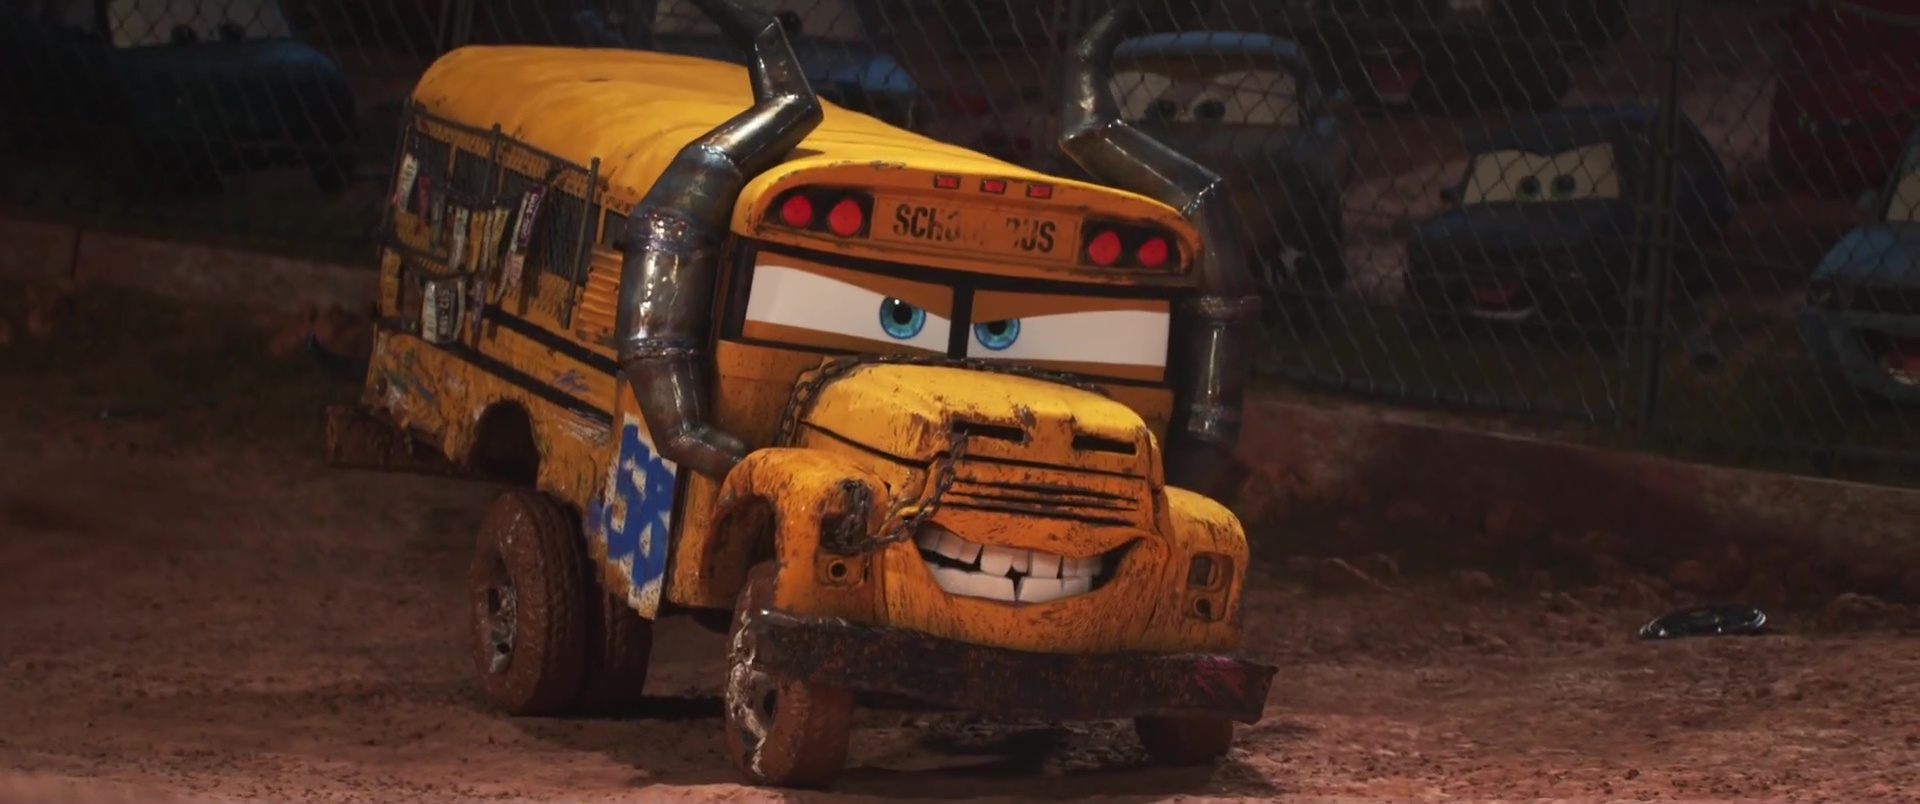 miss-fritter-personnage-cars-3-02